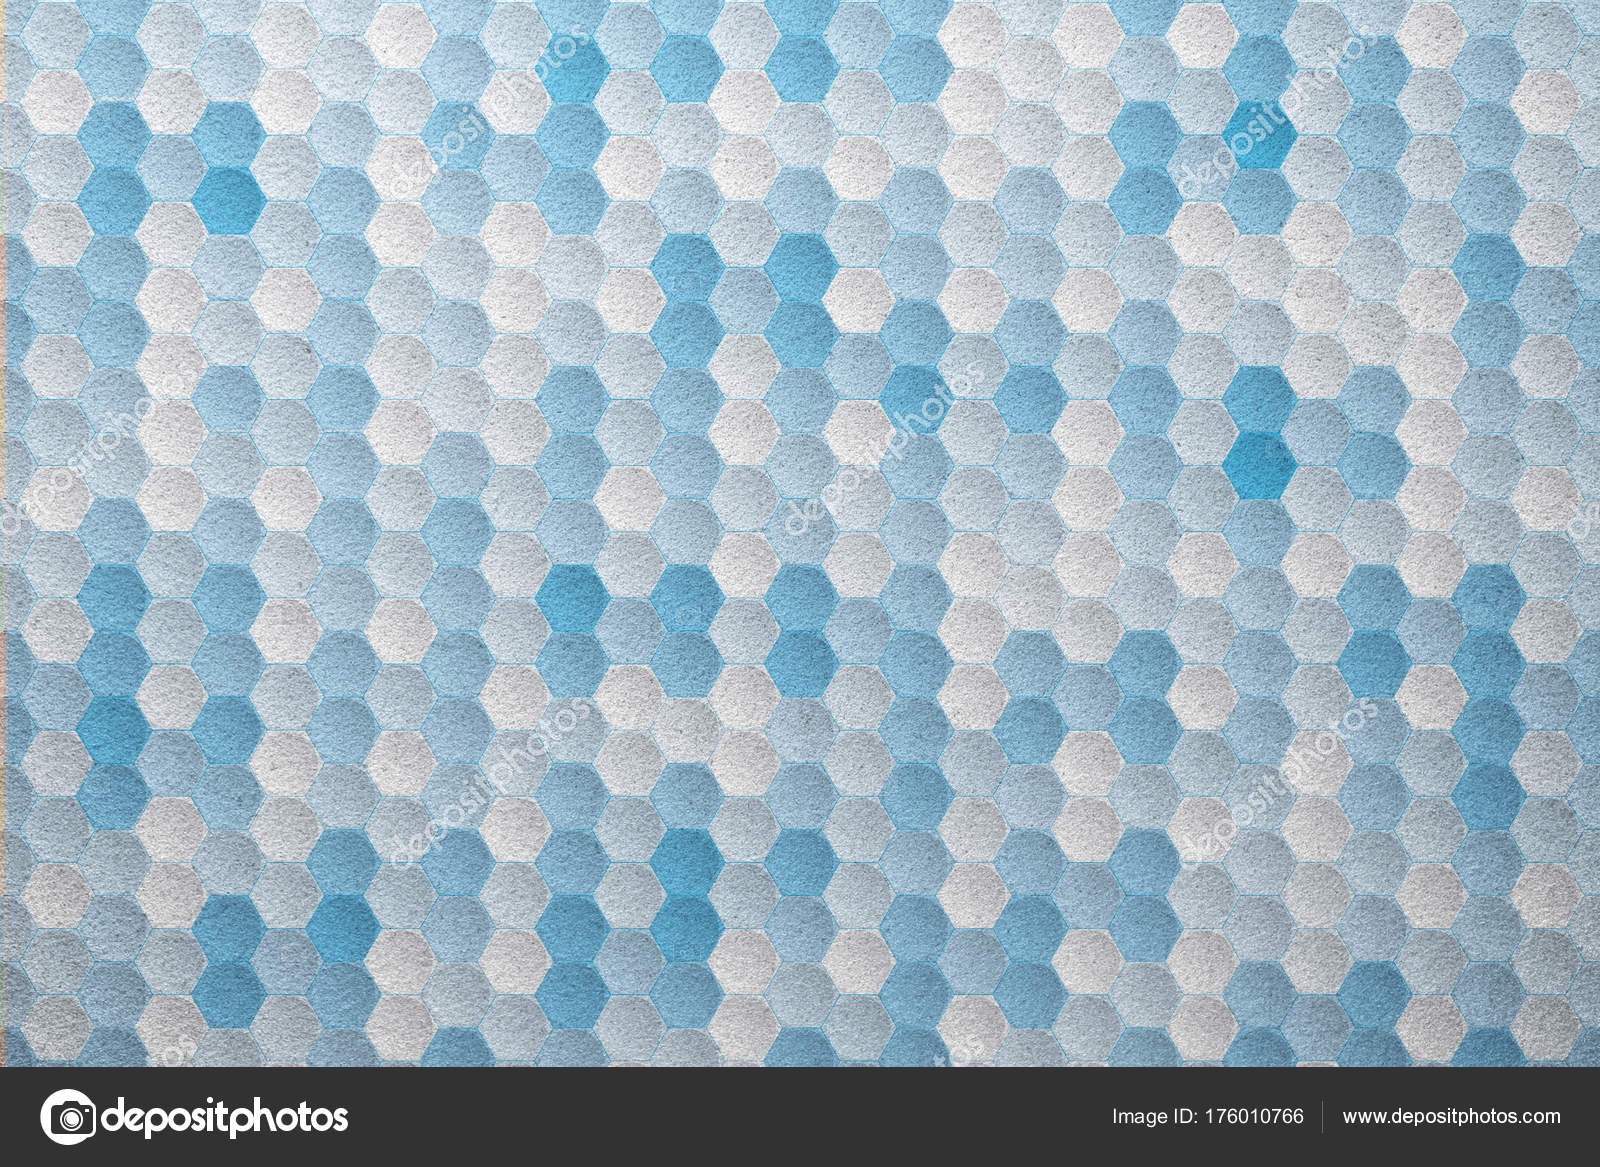 White Blue Hexagon Geometric Pattern Frosted Glass Texture